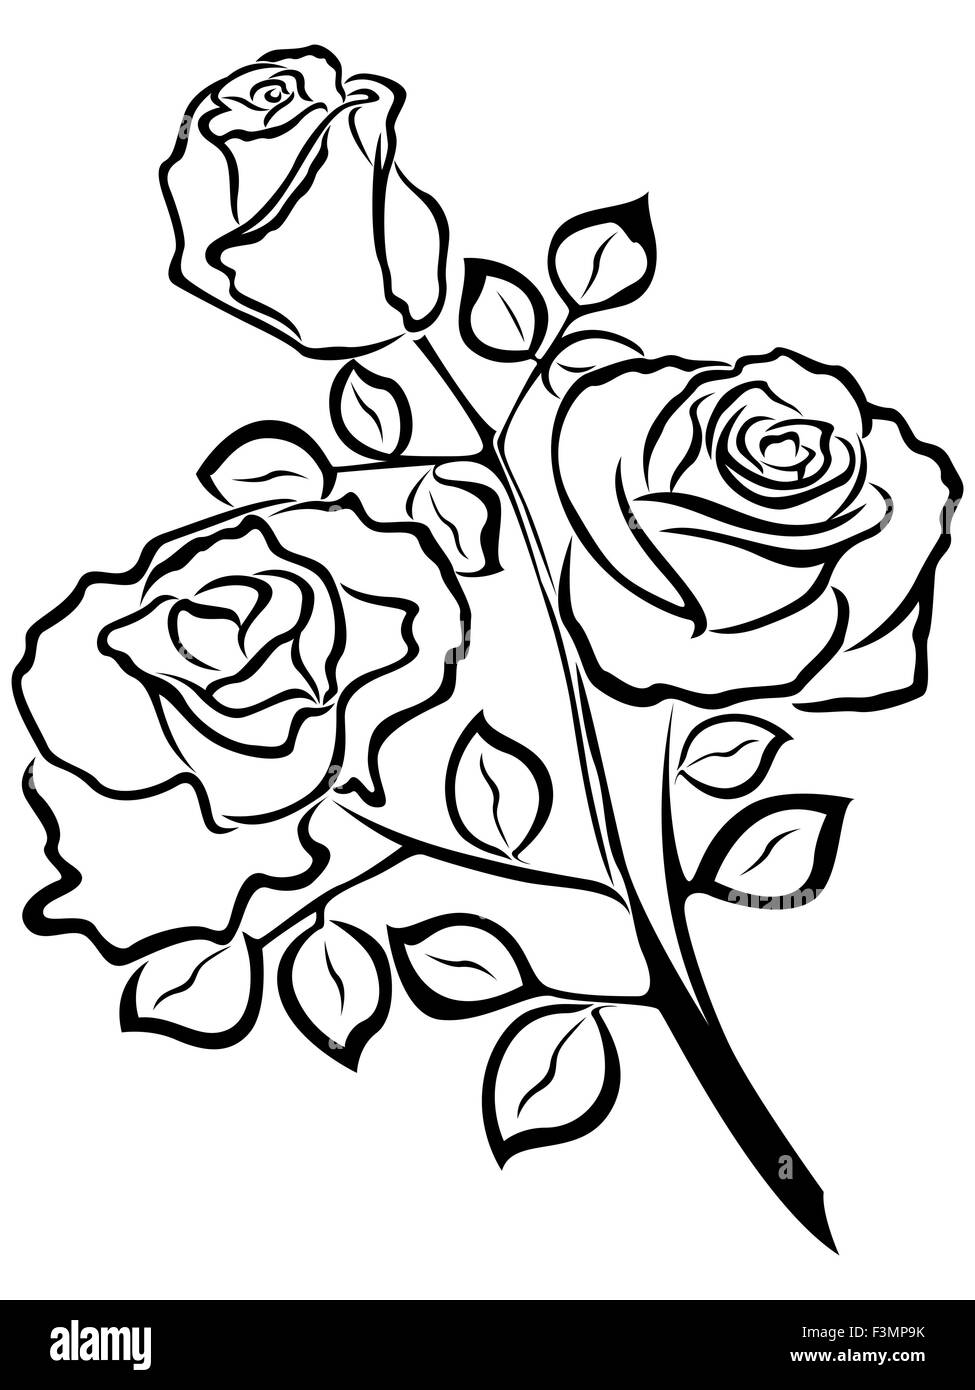 Black outline of rose flowers isolated on a white background vector black outline of rose flowers isolated on a white background vector illustration mightylinksfo